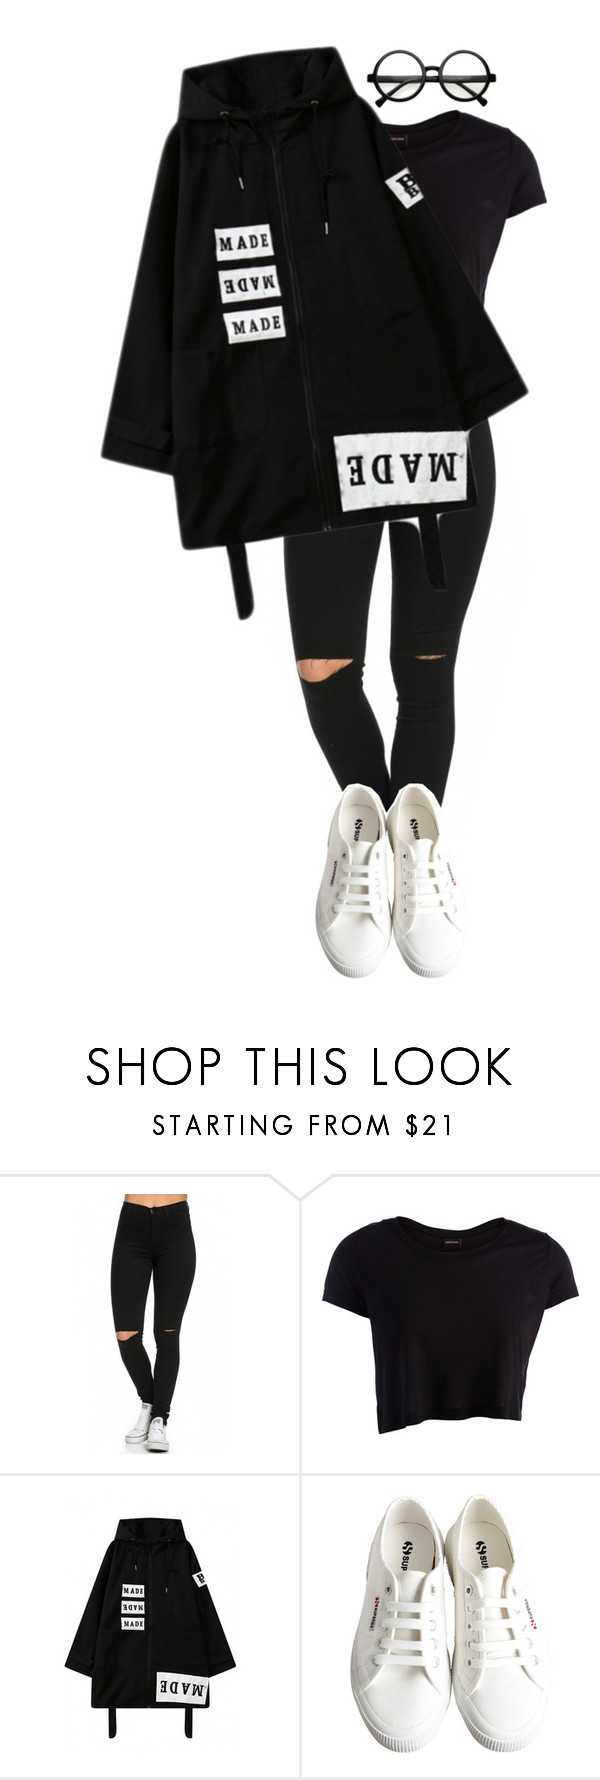 """""""Untitled #180"""" by supersweetsasha ❤ liked on Polyvore featuring Pieces, Superga, Retrò, women's clothing, women, female, woman, misses and juniors"""